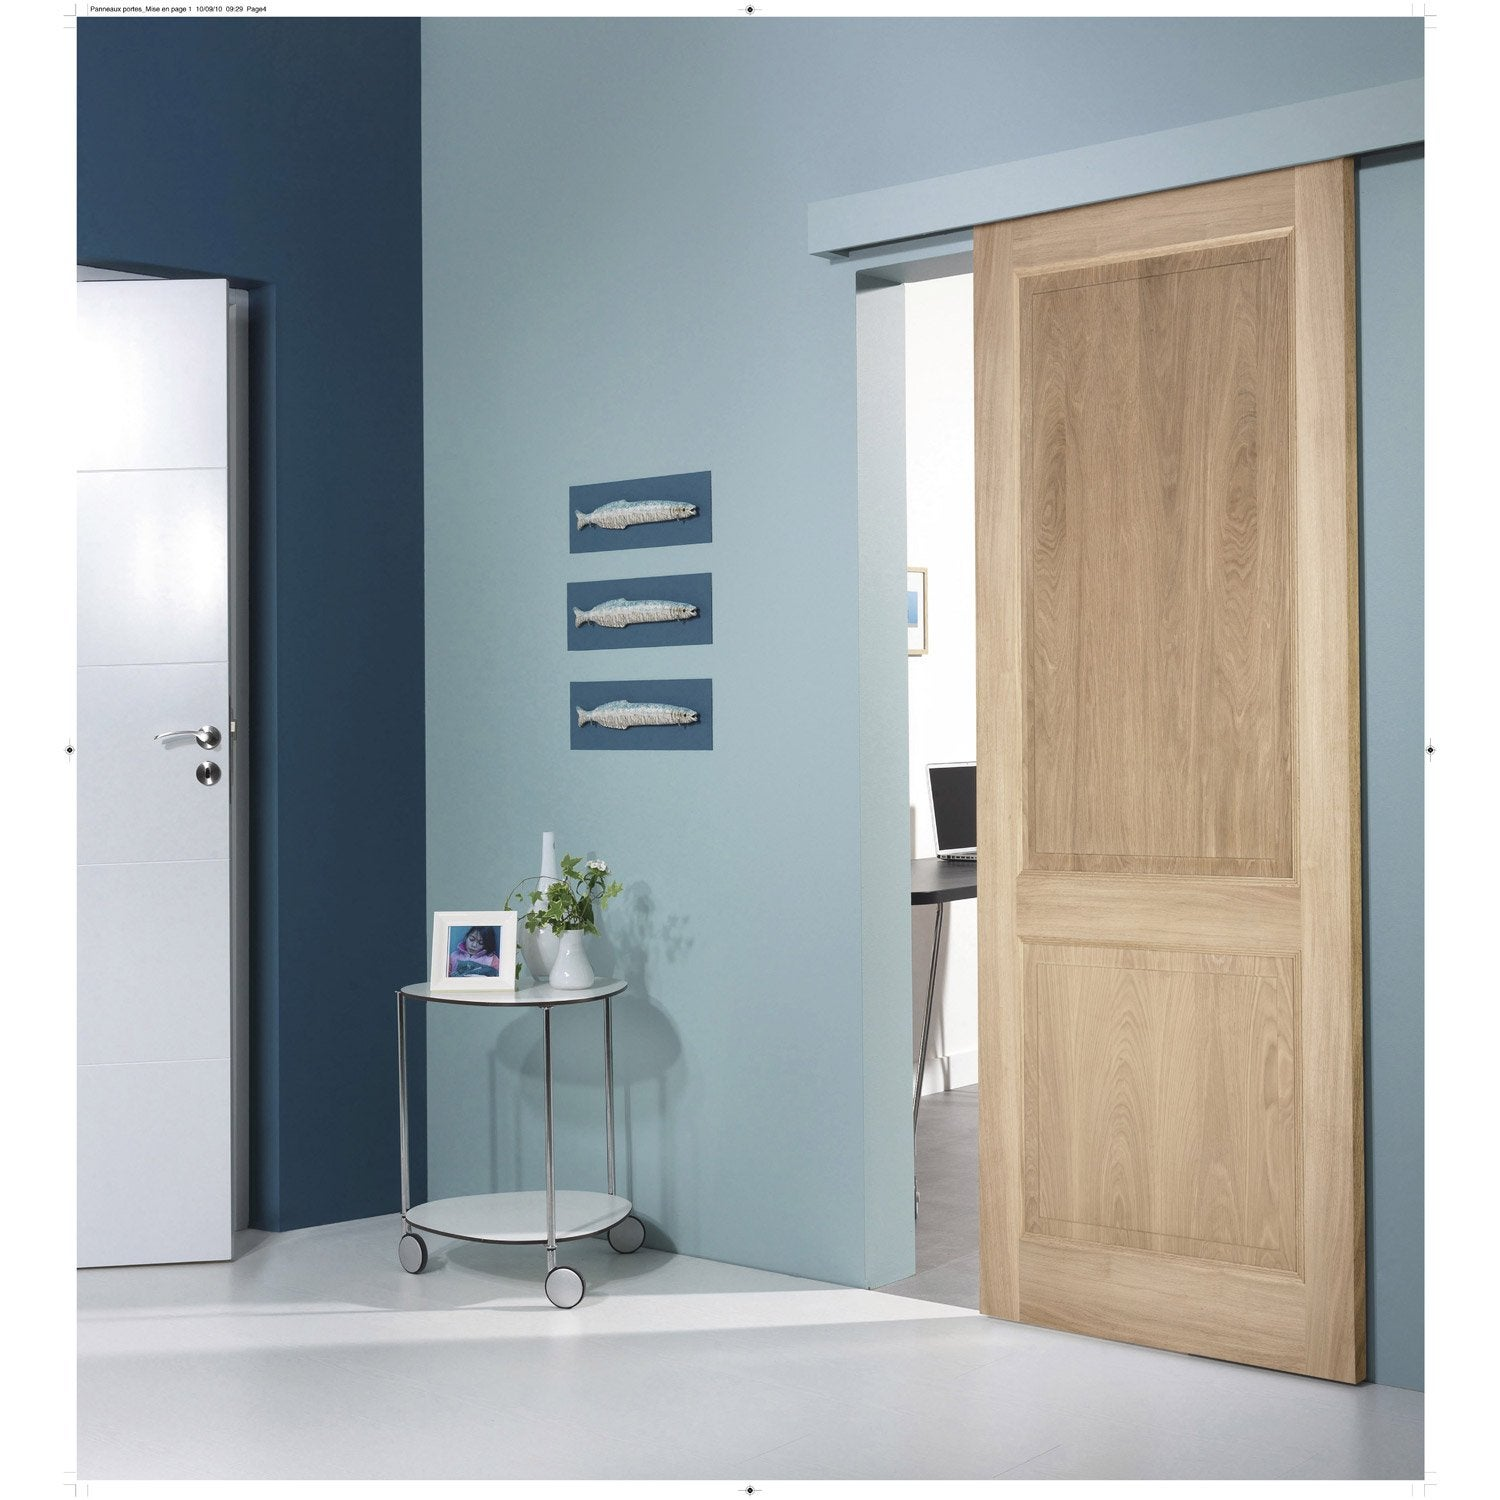 Ensemble Porte Coulissante Bruges Plaqu Ch Ne Avec Le Rail Turbo 2 En Aluminium Leroy Merlin